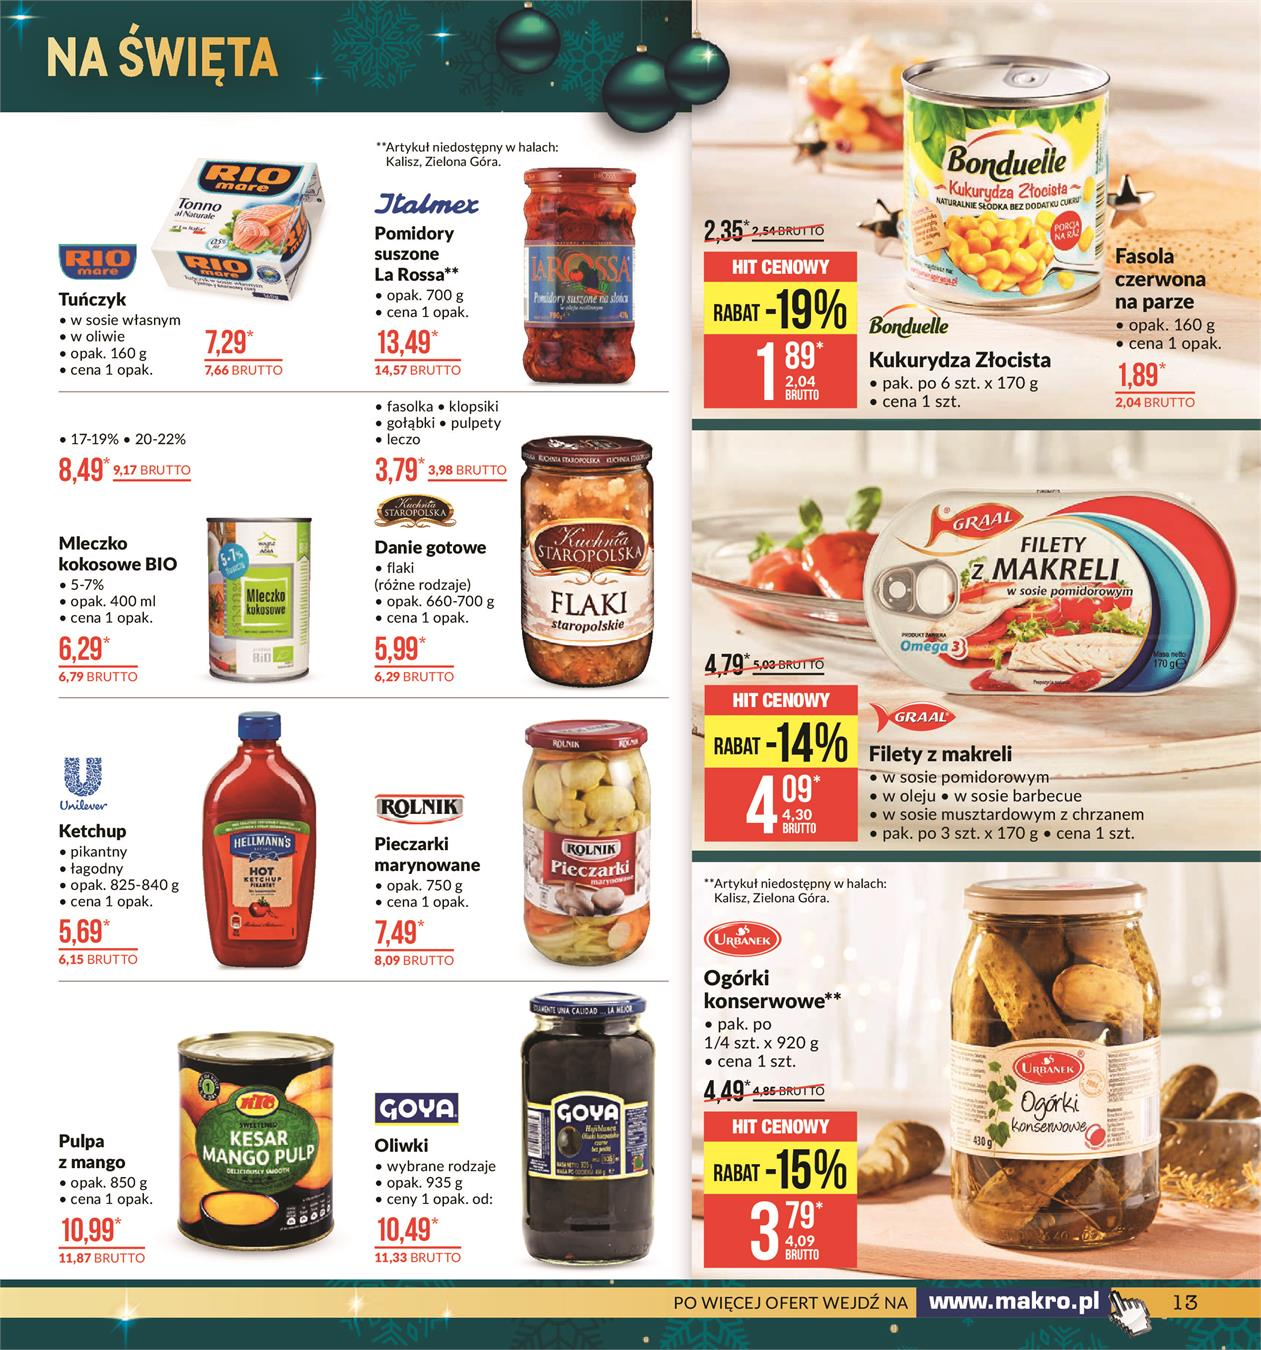 Gazetka MAKRO CASH AND CARRY POLSKA S A nr 13 od 2019-11-19 do 2019-12-02